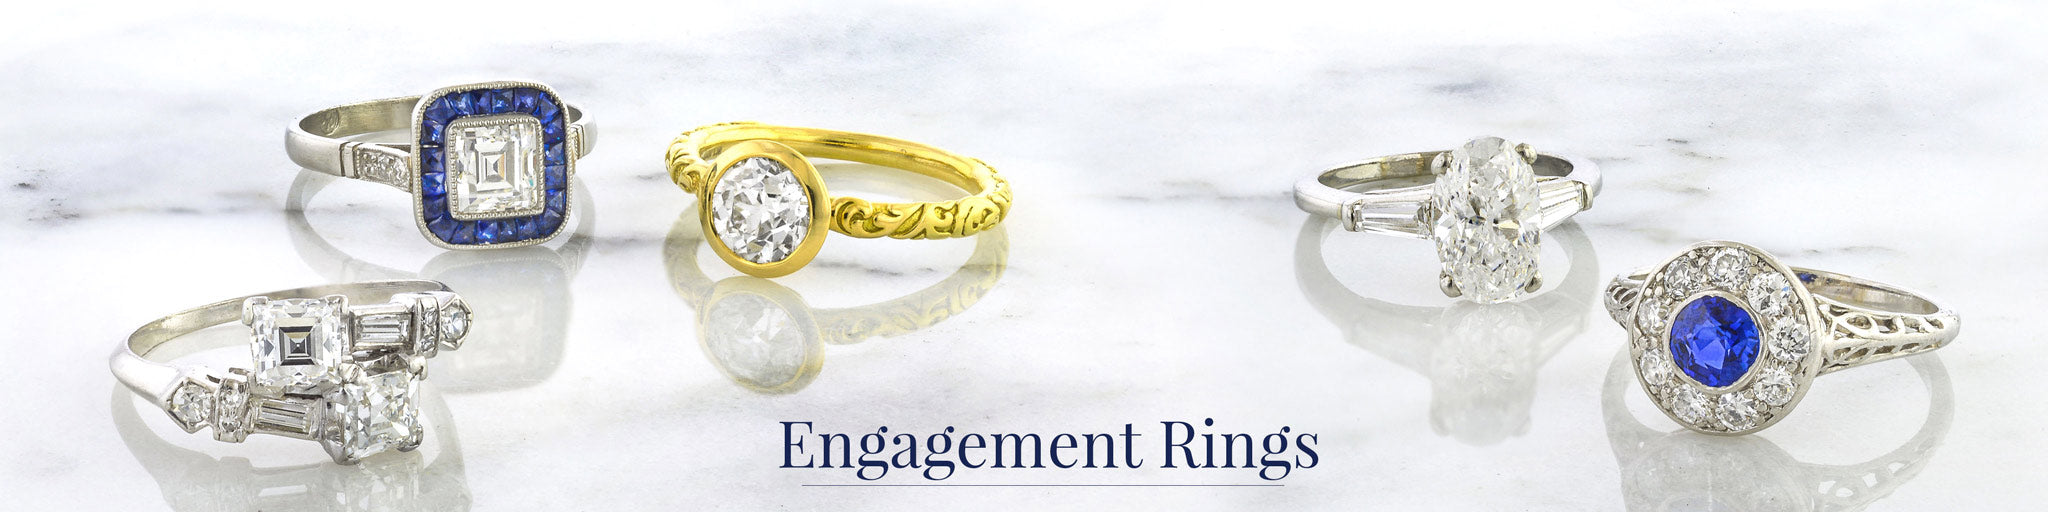 fbe28fda2 Antique, Estate, And Vintage Diamond Engagement Rings Also Featuring our  Exclusive In-House Designs